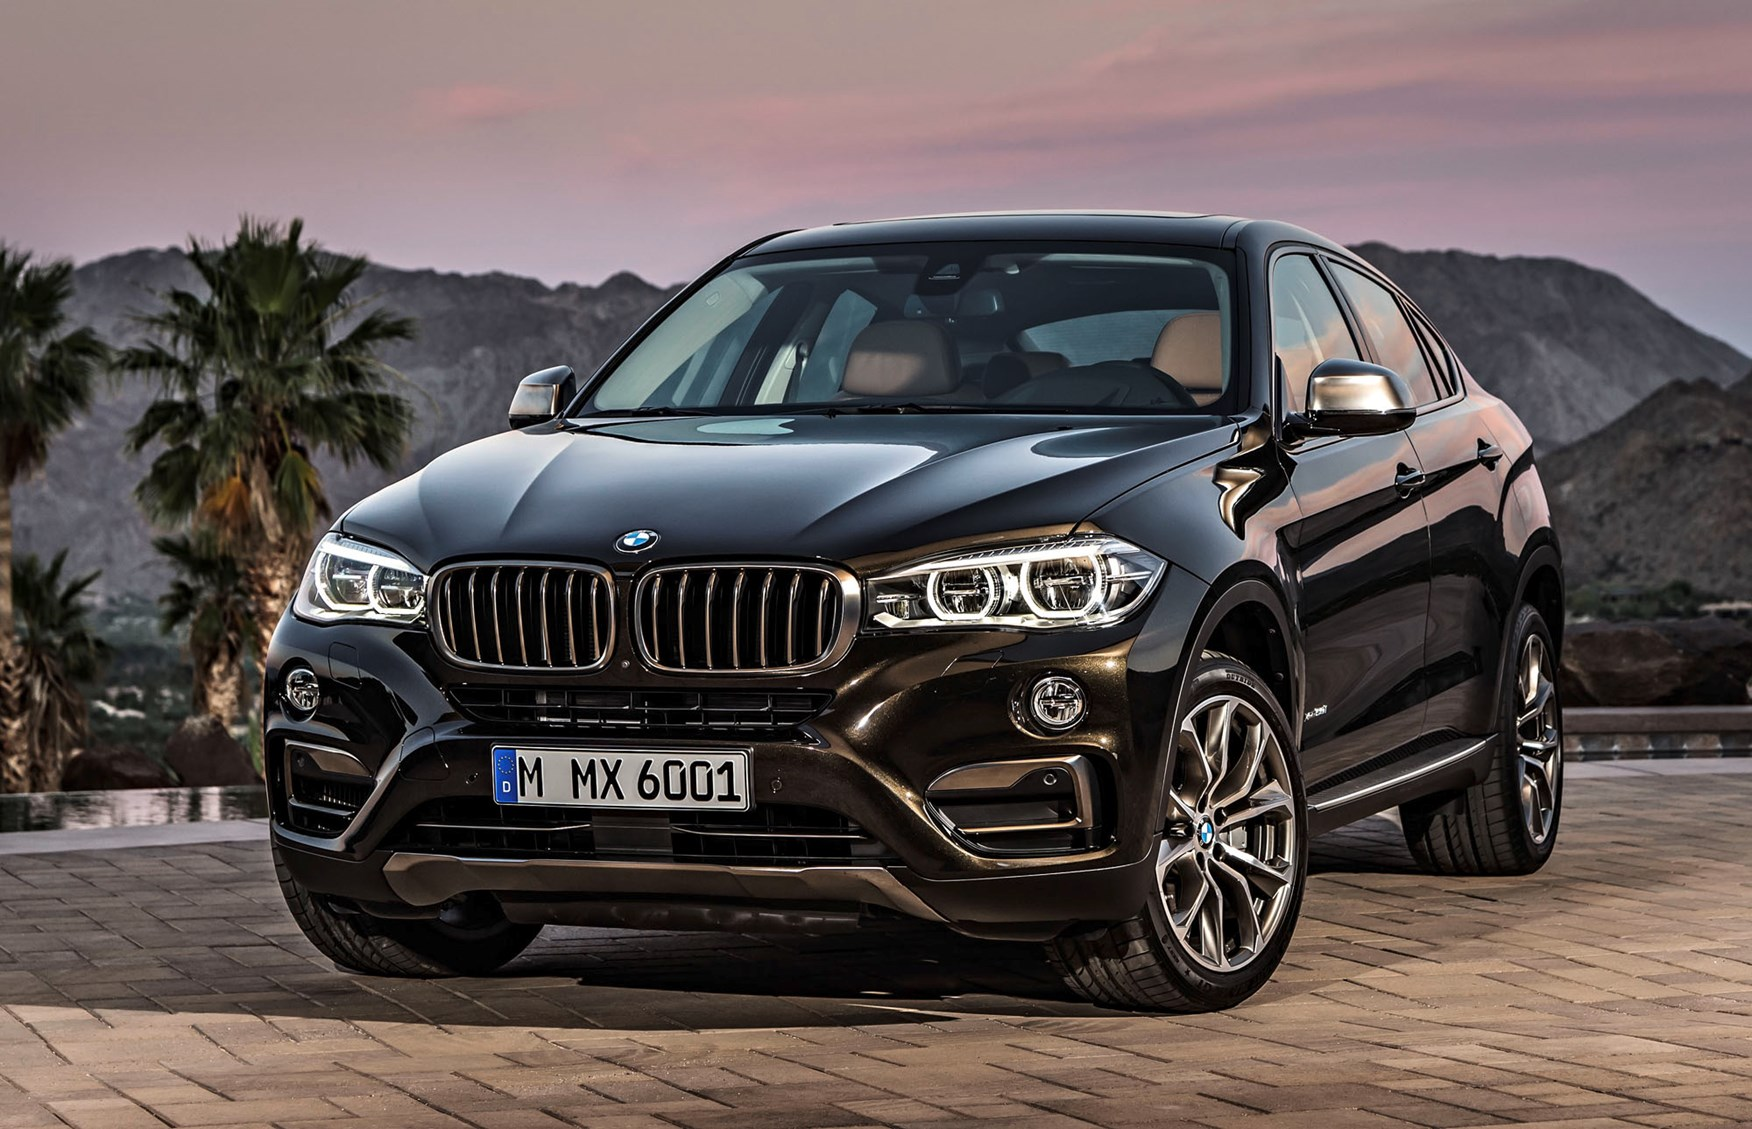 bmw x6 4x4 review 2014 parkers. Black Bedroom Furniture Sets. Home Design Ideas